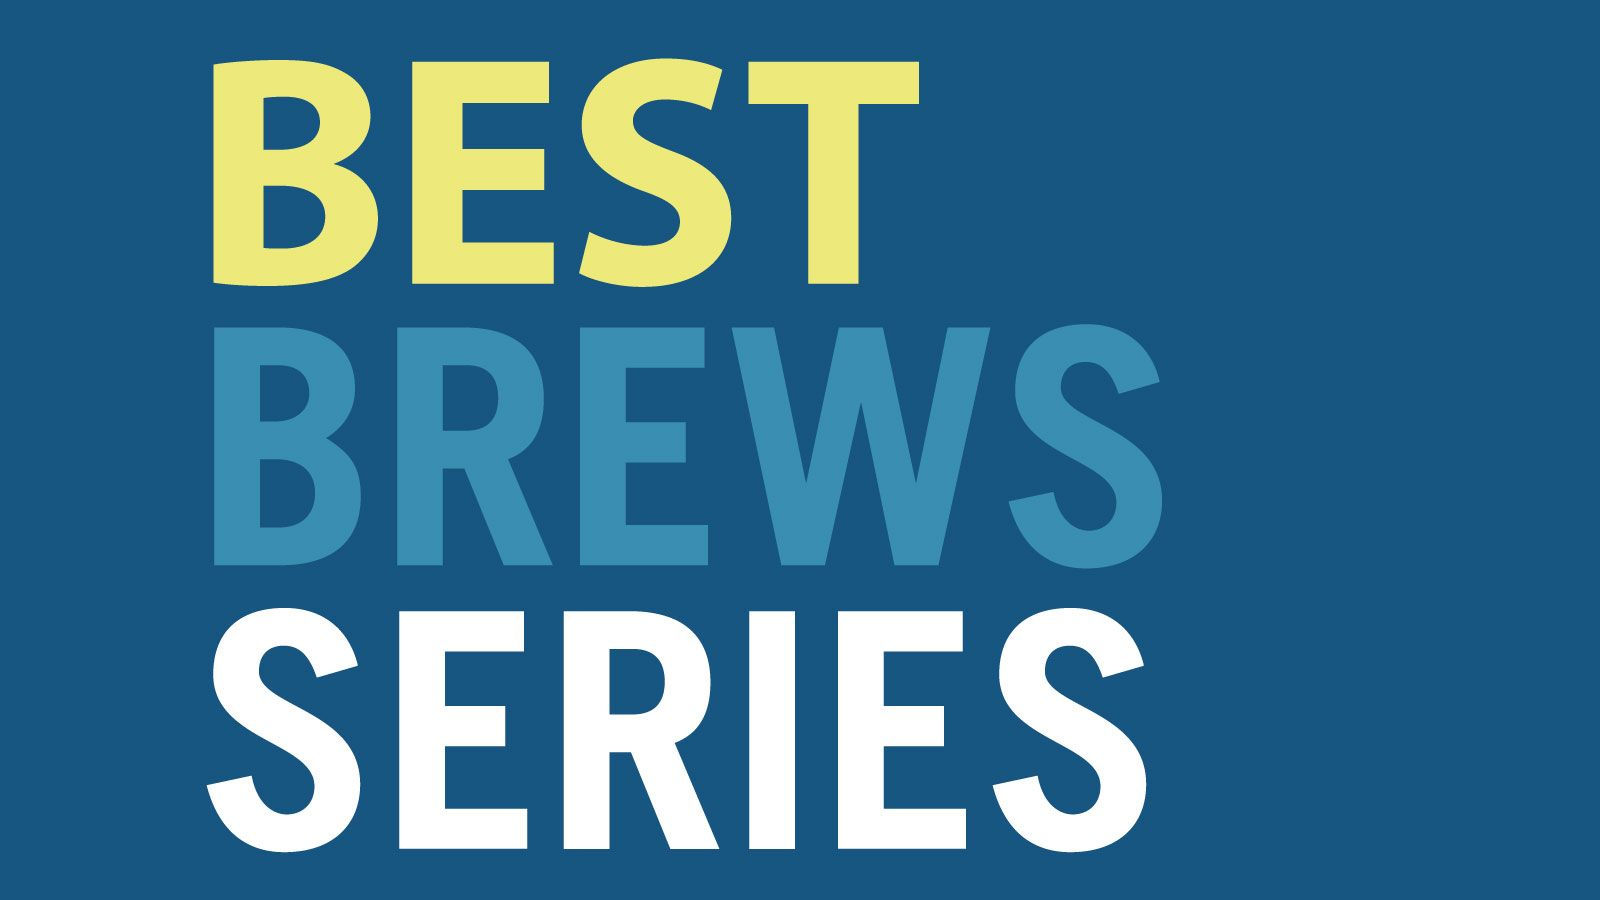 Best Brews™ Series